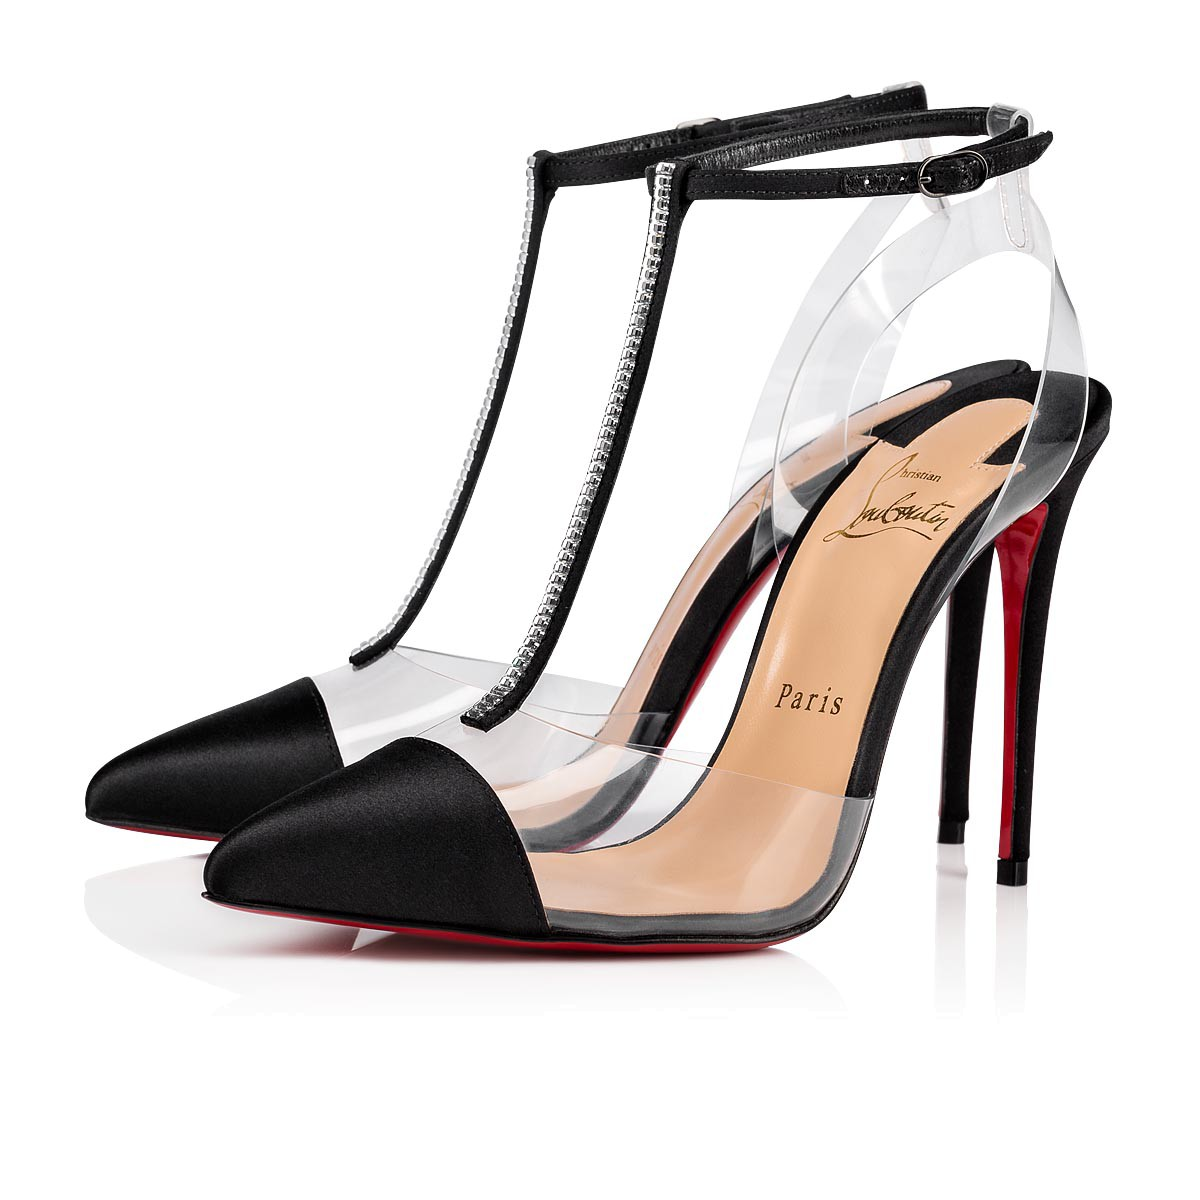 Women Shoes - Nosy Strass - Christian Louboutin